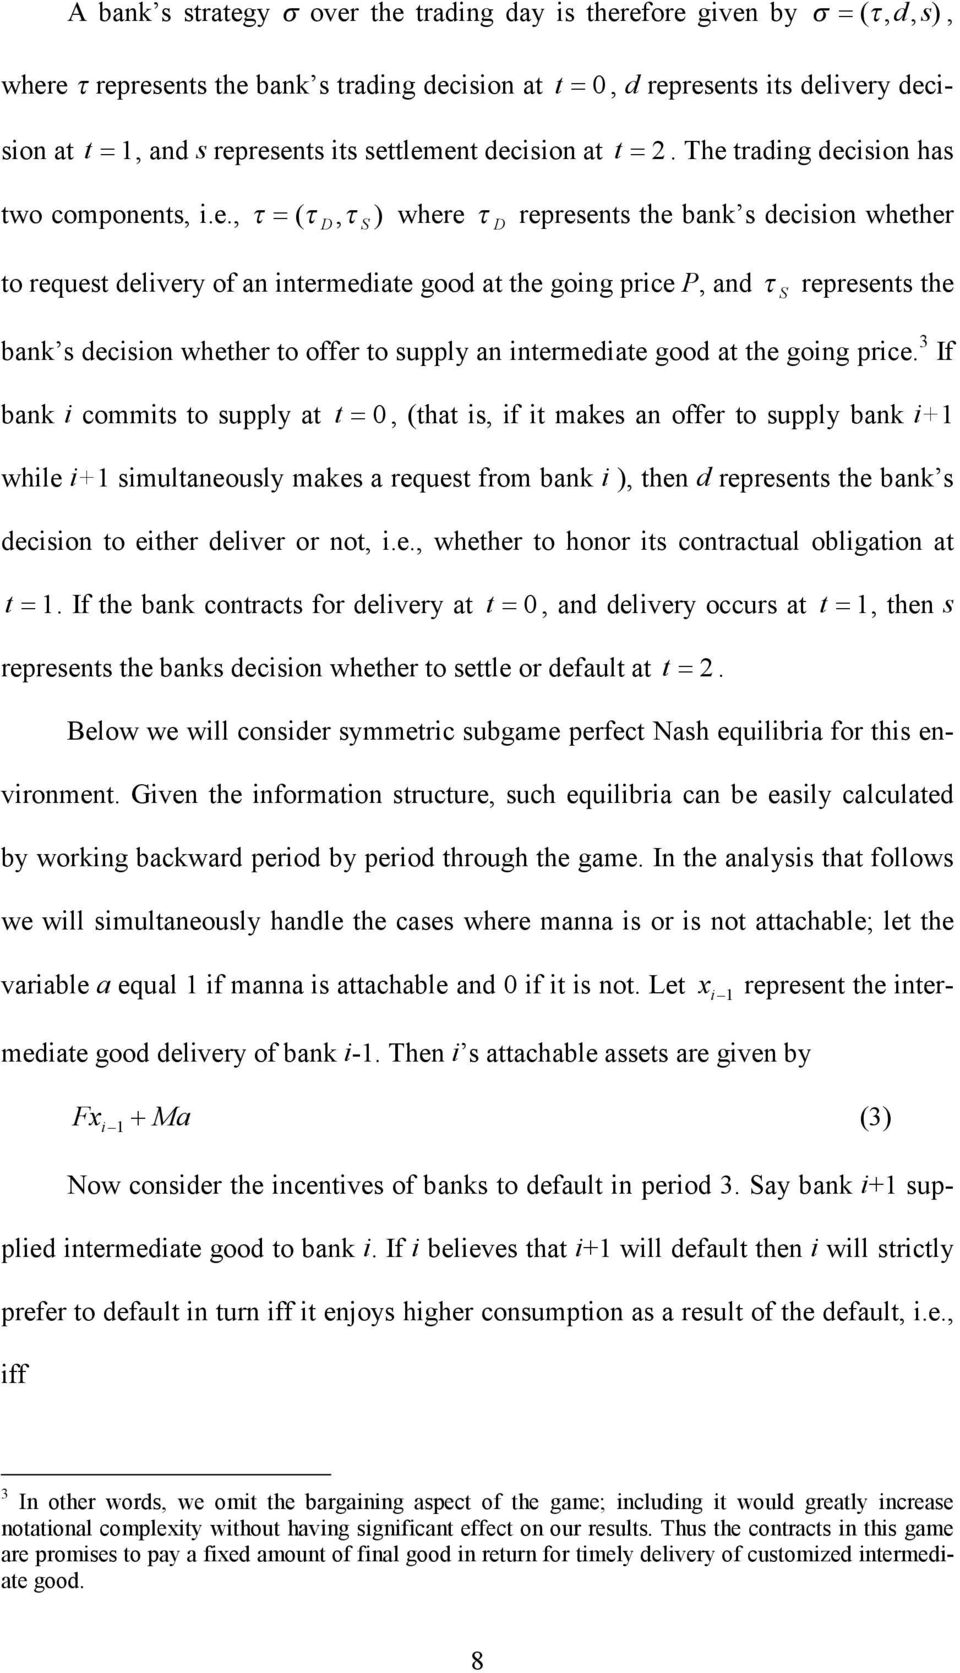 () D, ) S ) where ) D represents the bank s decision whether to request delivery of an intermediate good at the going price P, and ) S represents the bank s decision whether to offer to supply an